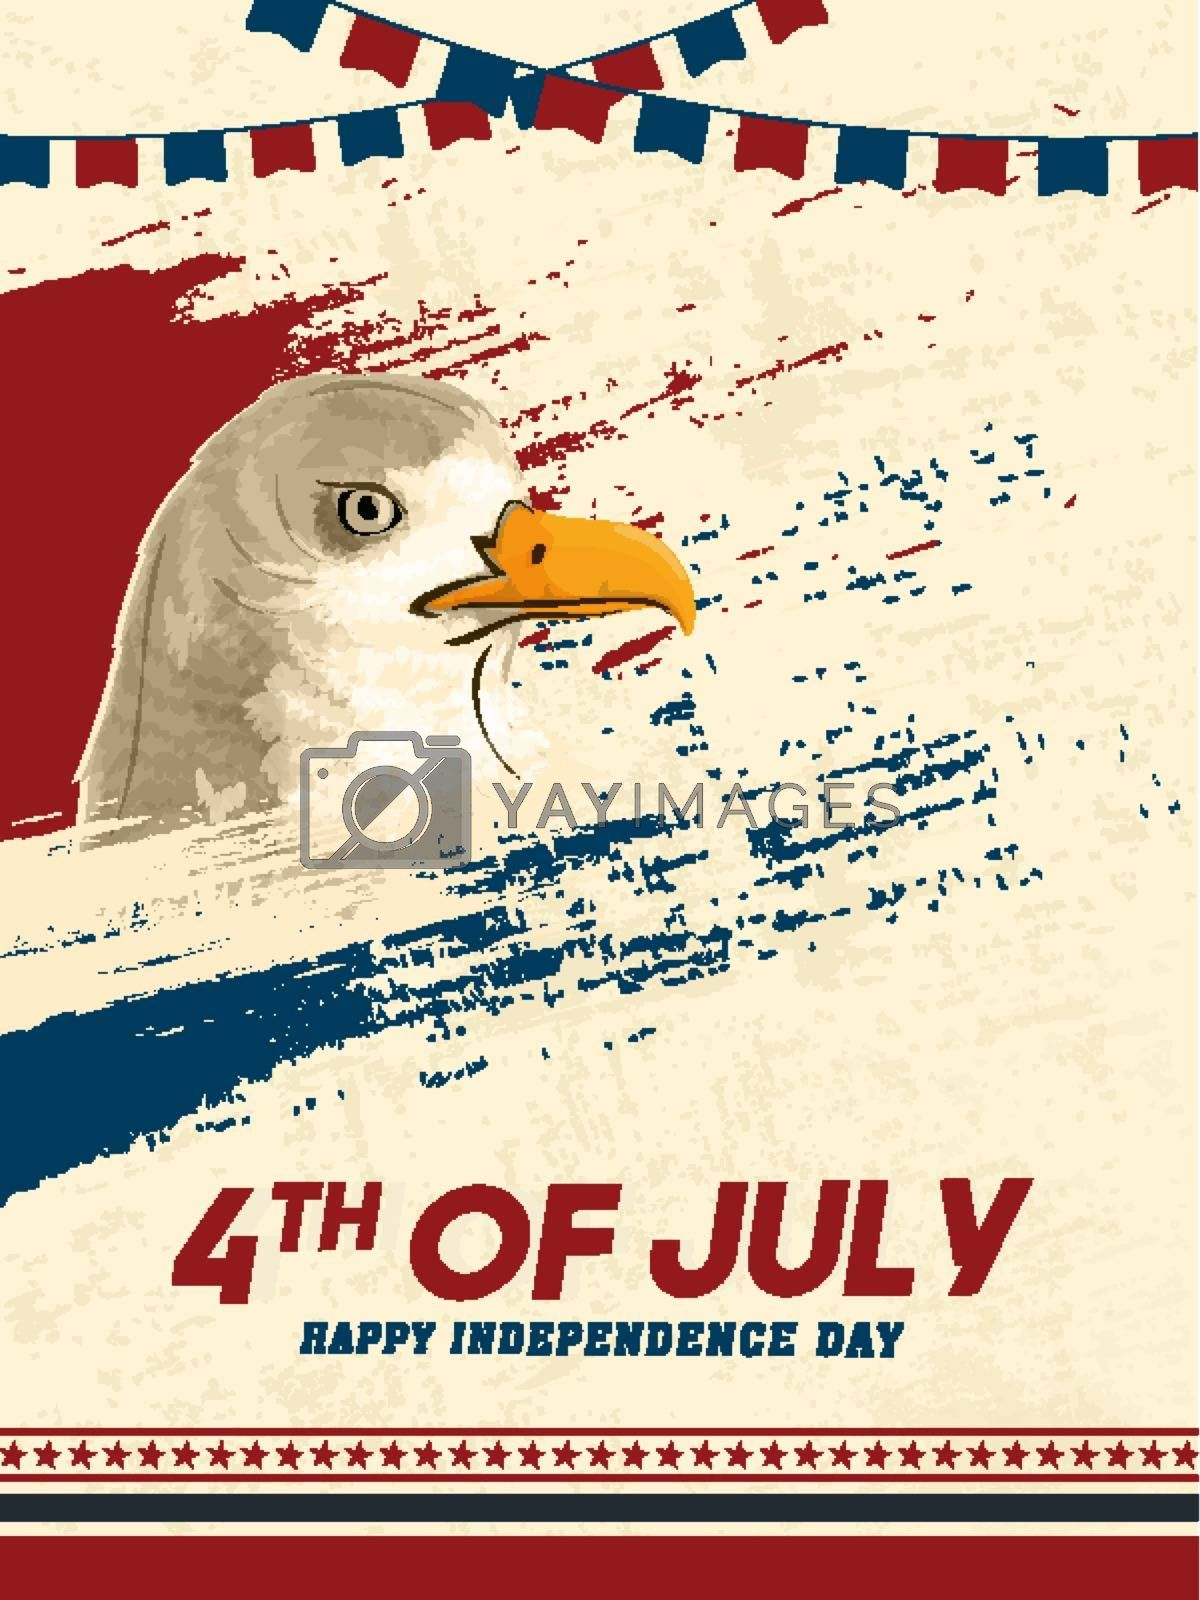 Royalty free image of 4th of July Independence Day template design with American Natio by aispl